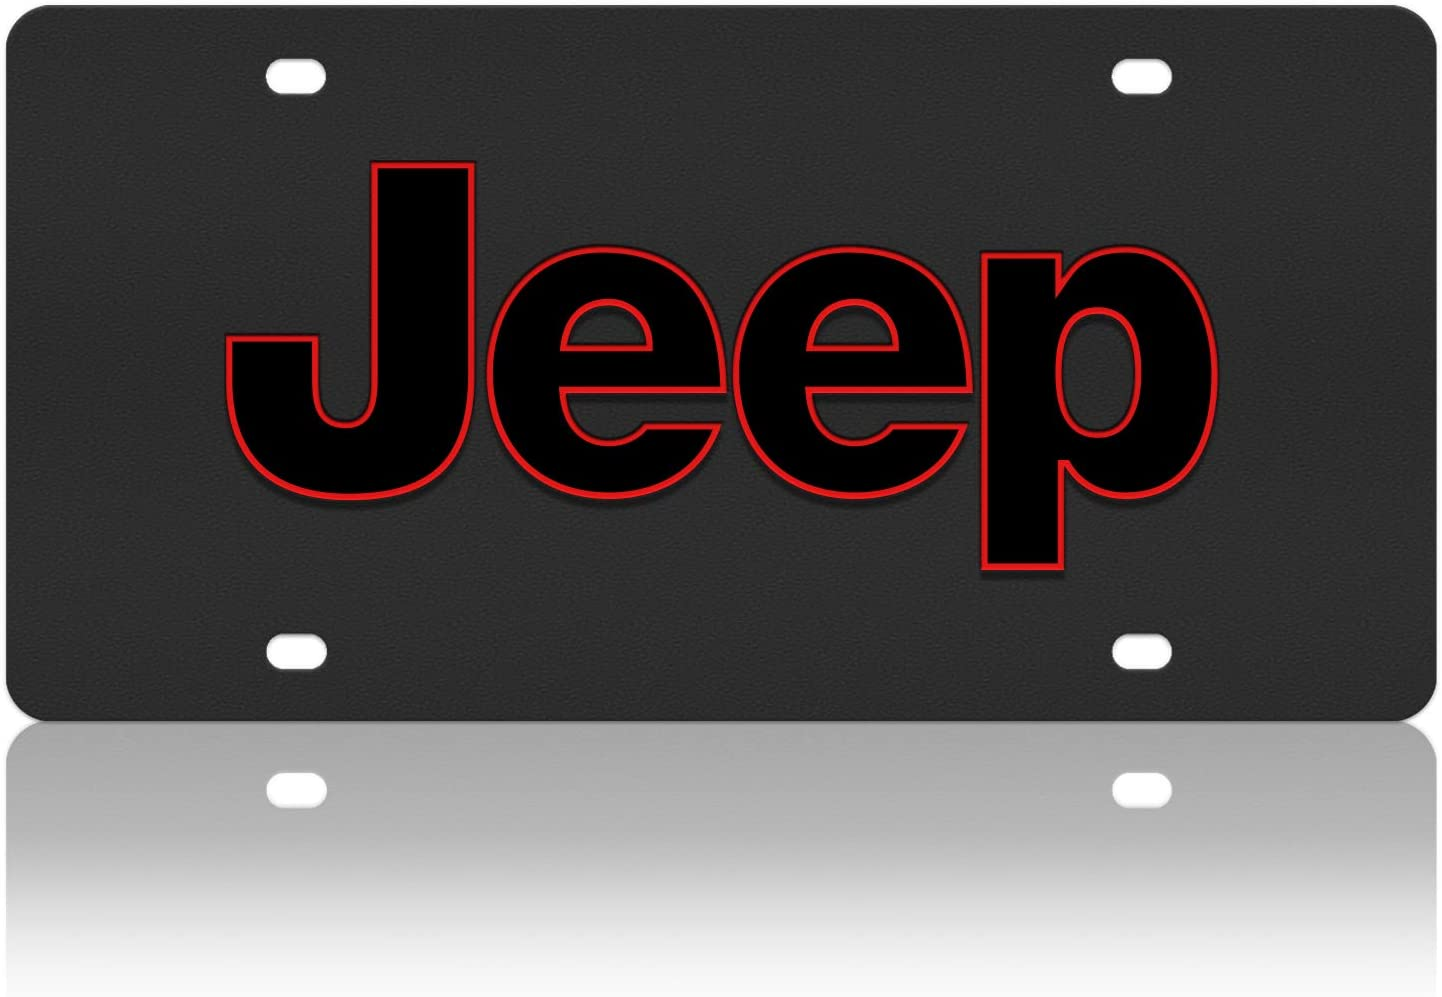 Compatible with Jeep Word Carbon Steel License Plate Eurosport Daytona